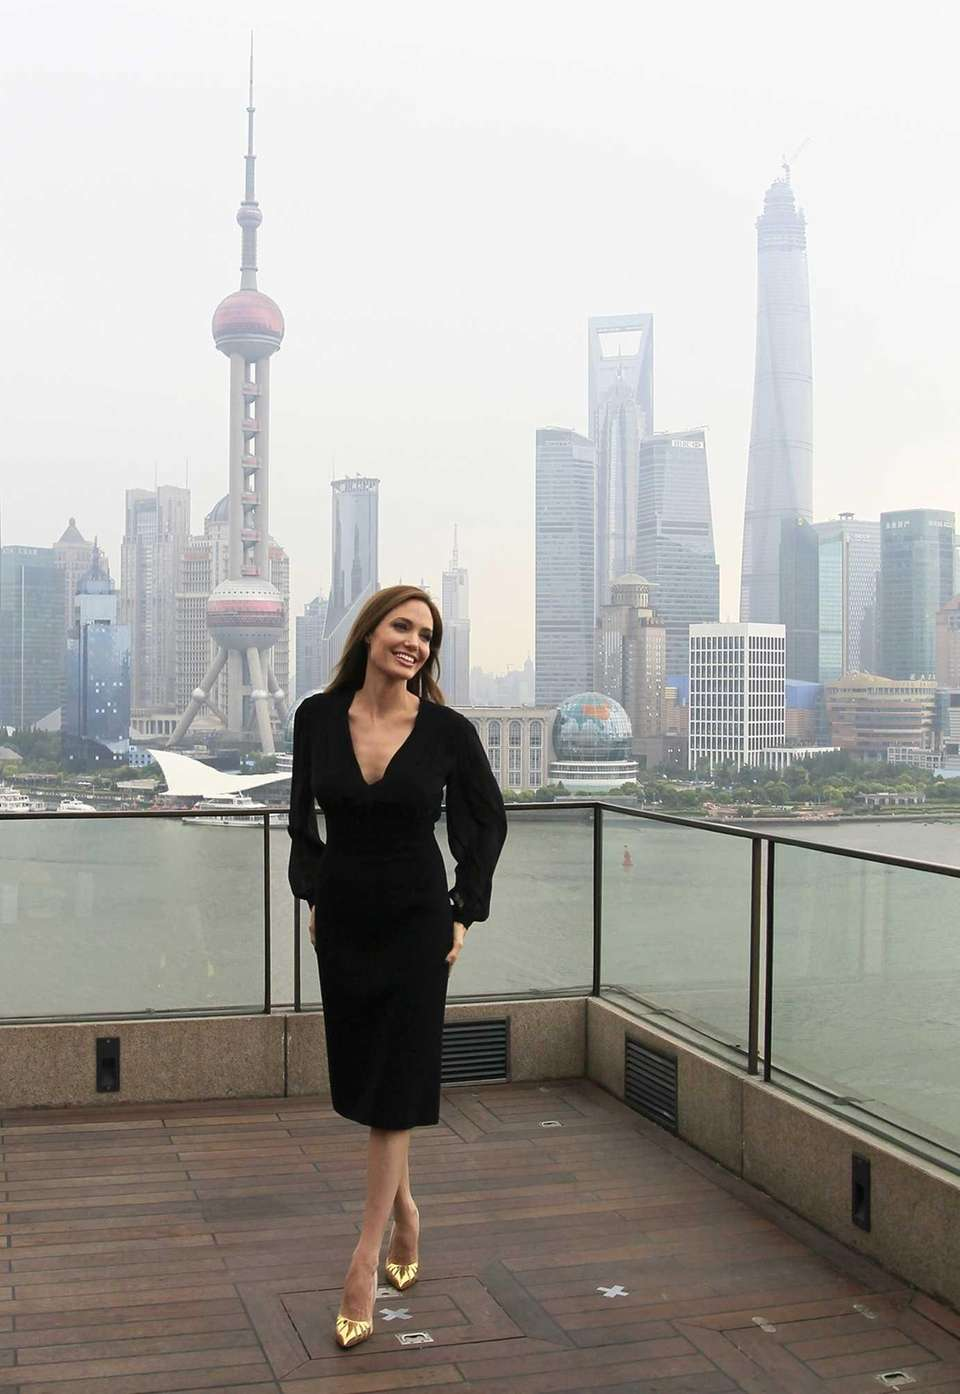 Angelina Jolie stands against a backdrop of the